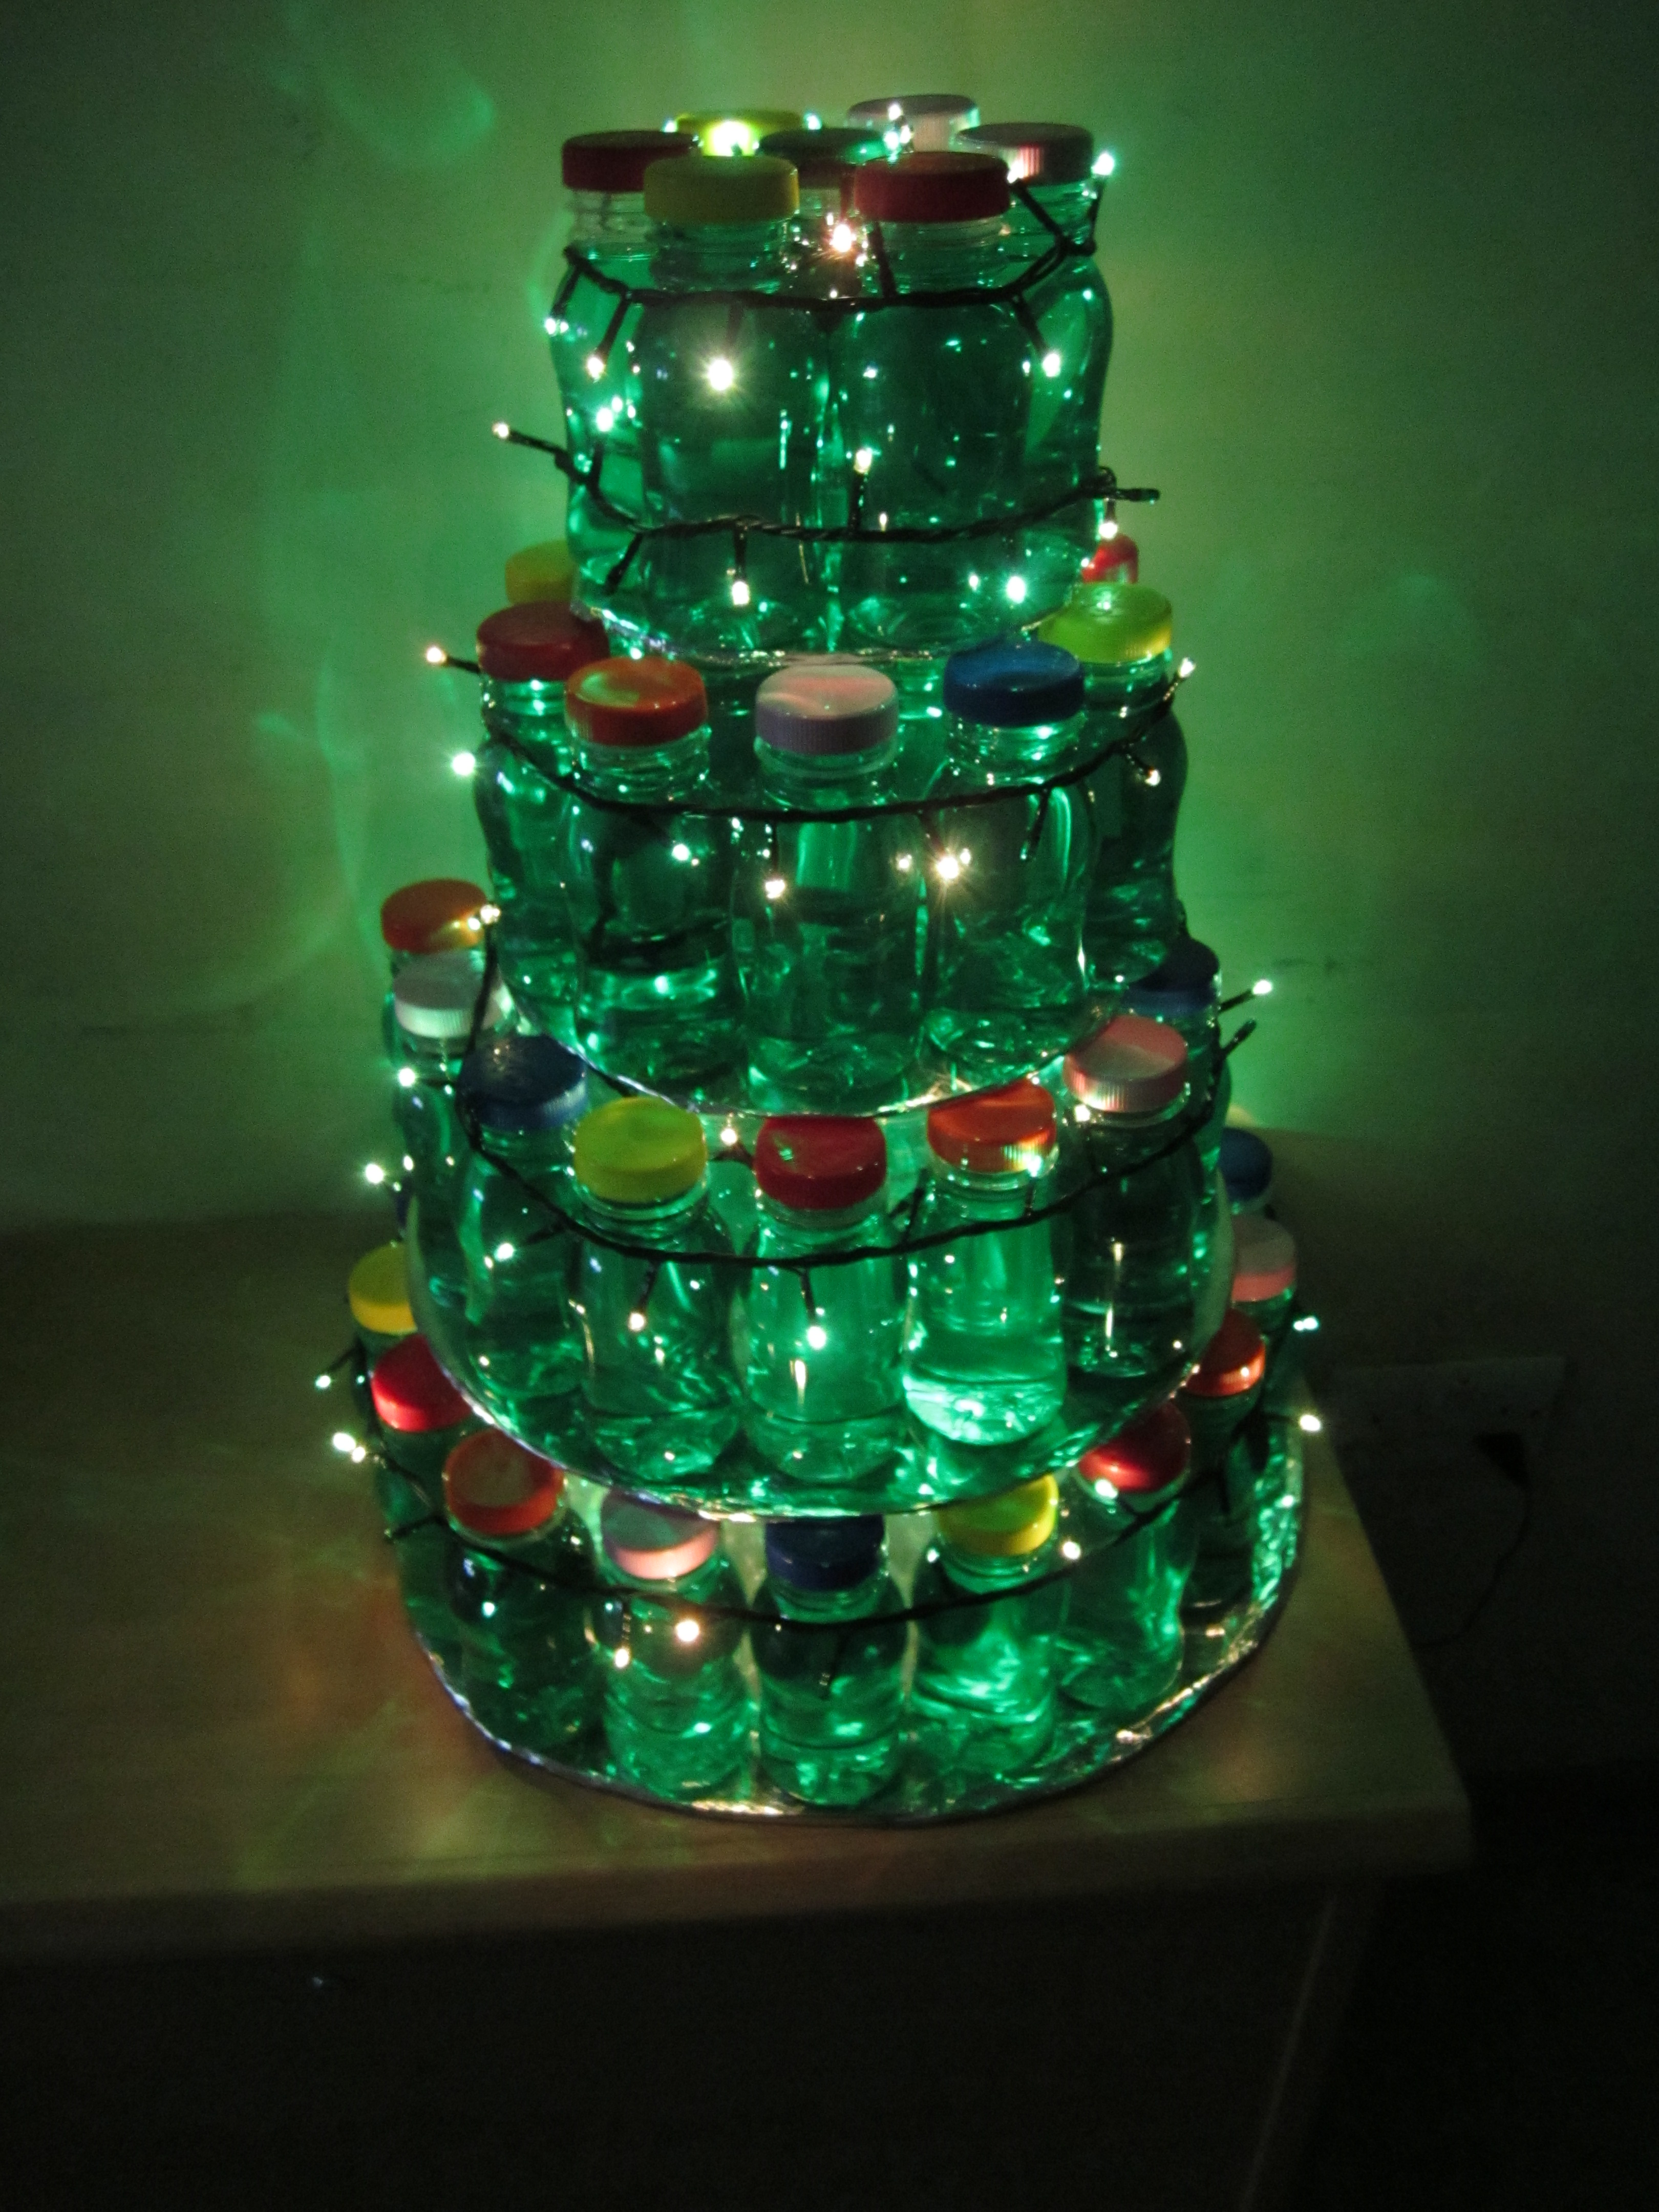 Christmas Tree Made Out of Bottles